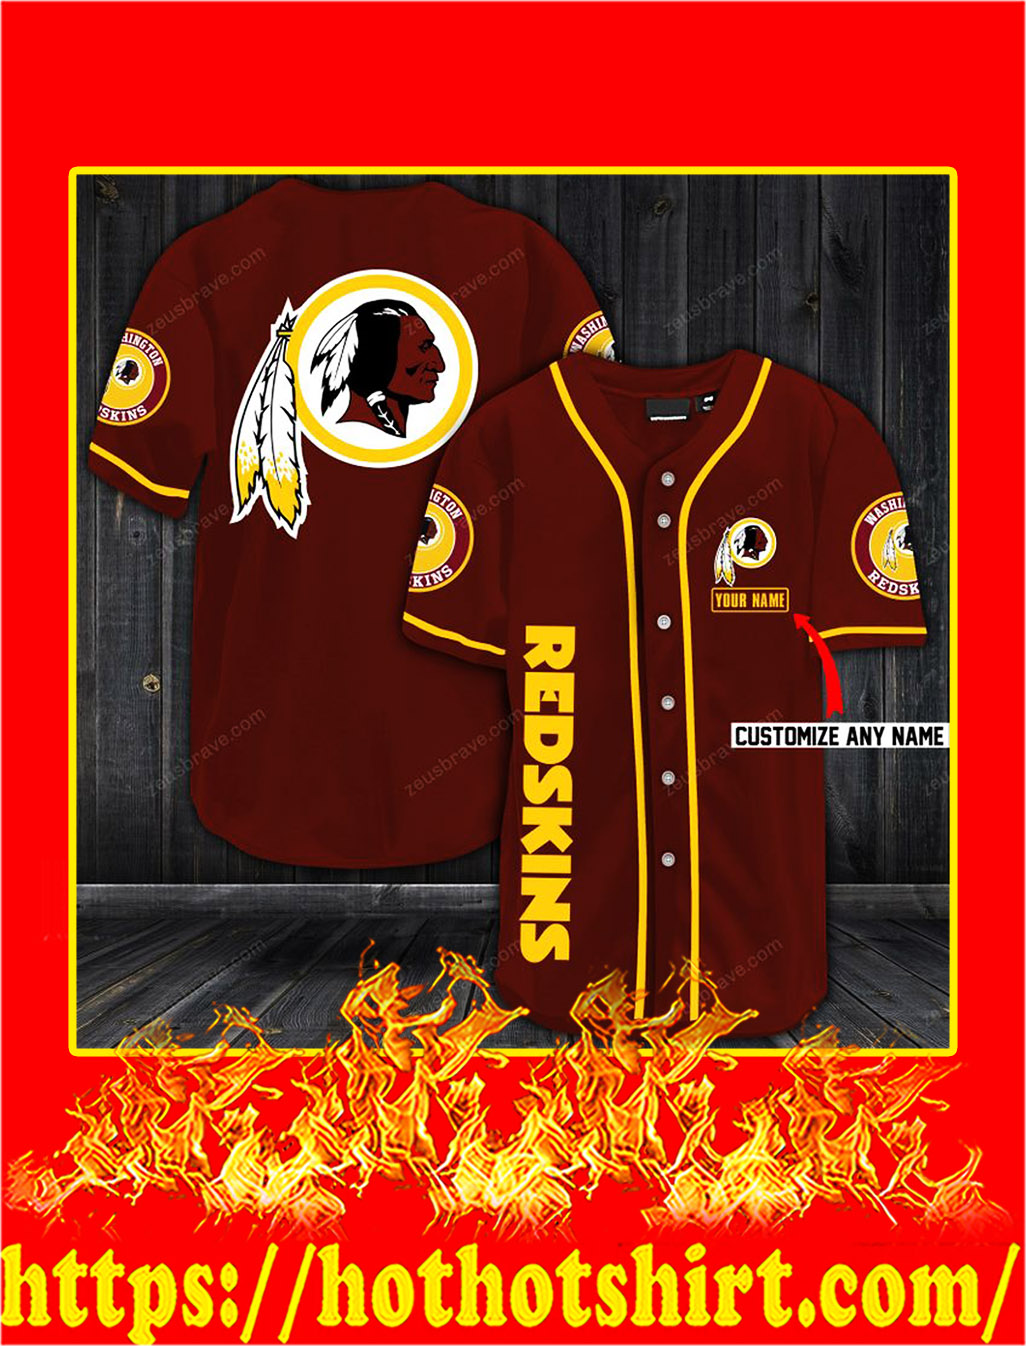 Customize name washington redskins hawaiian shirt- red